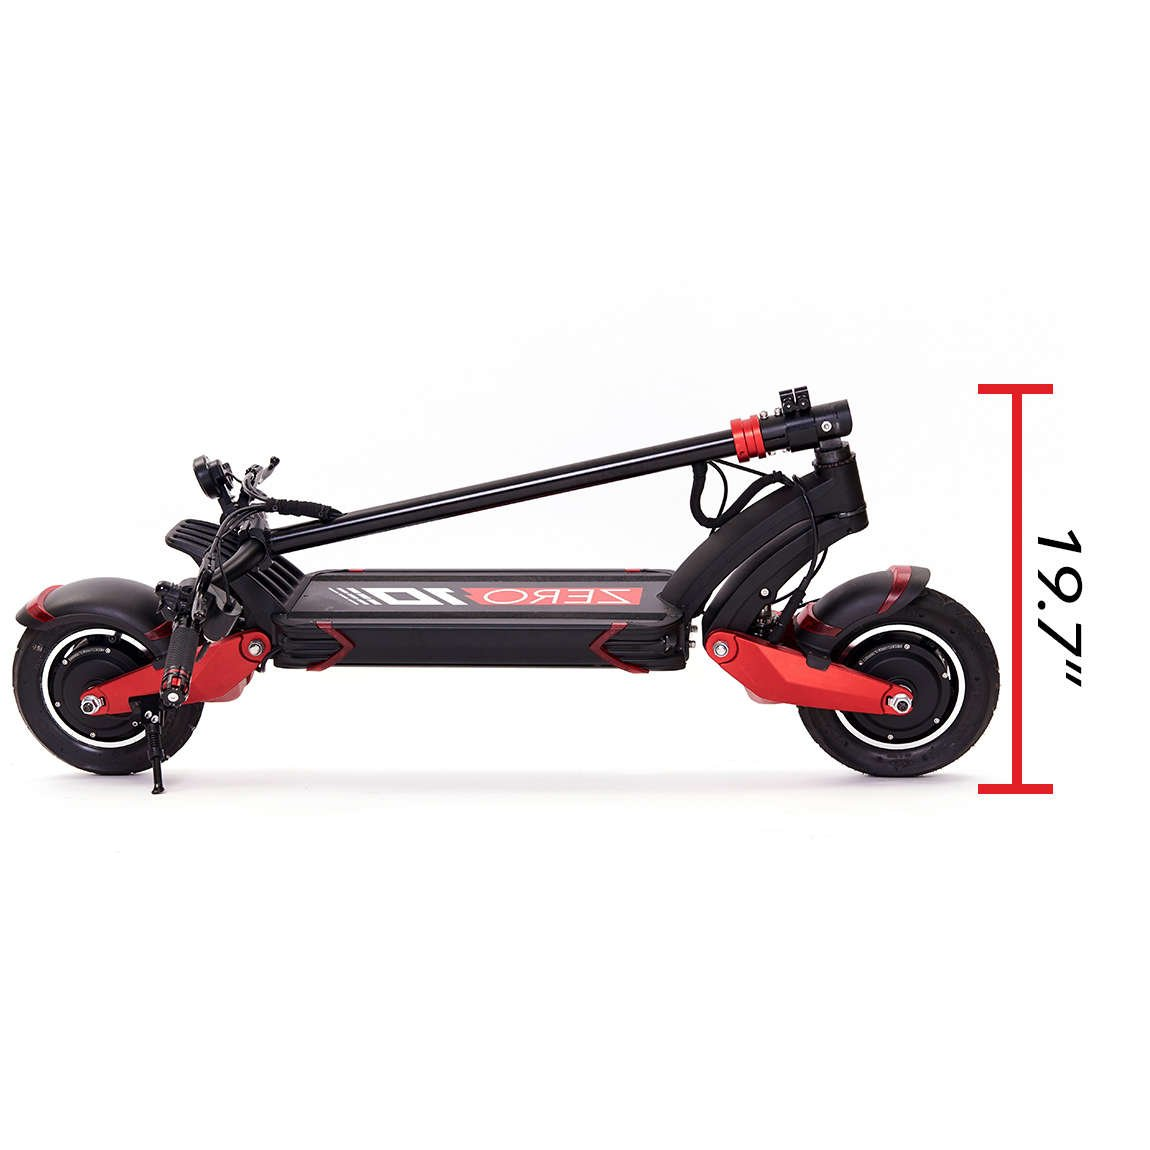 zero 10x electric scooter folded height 19.7 in